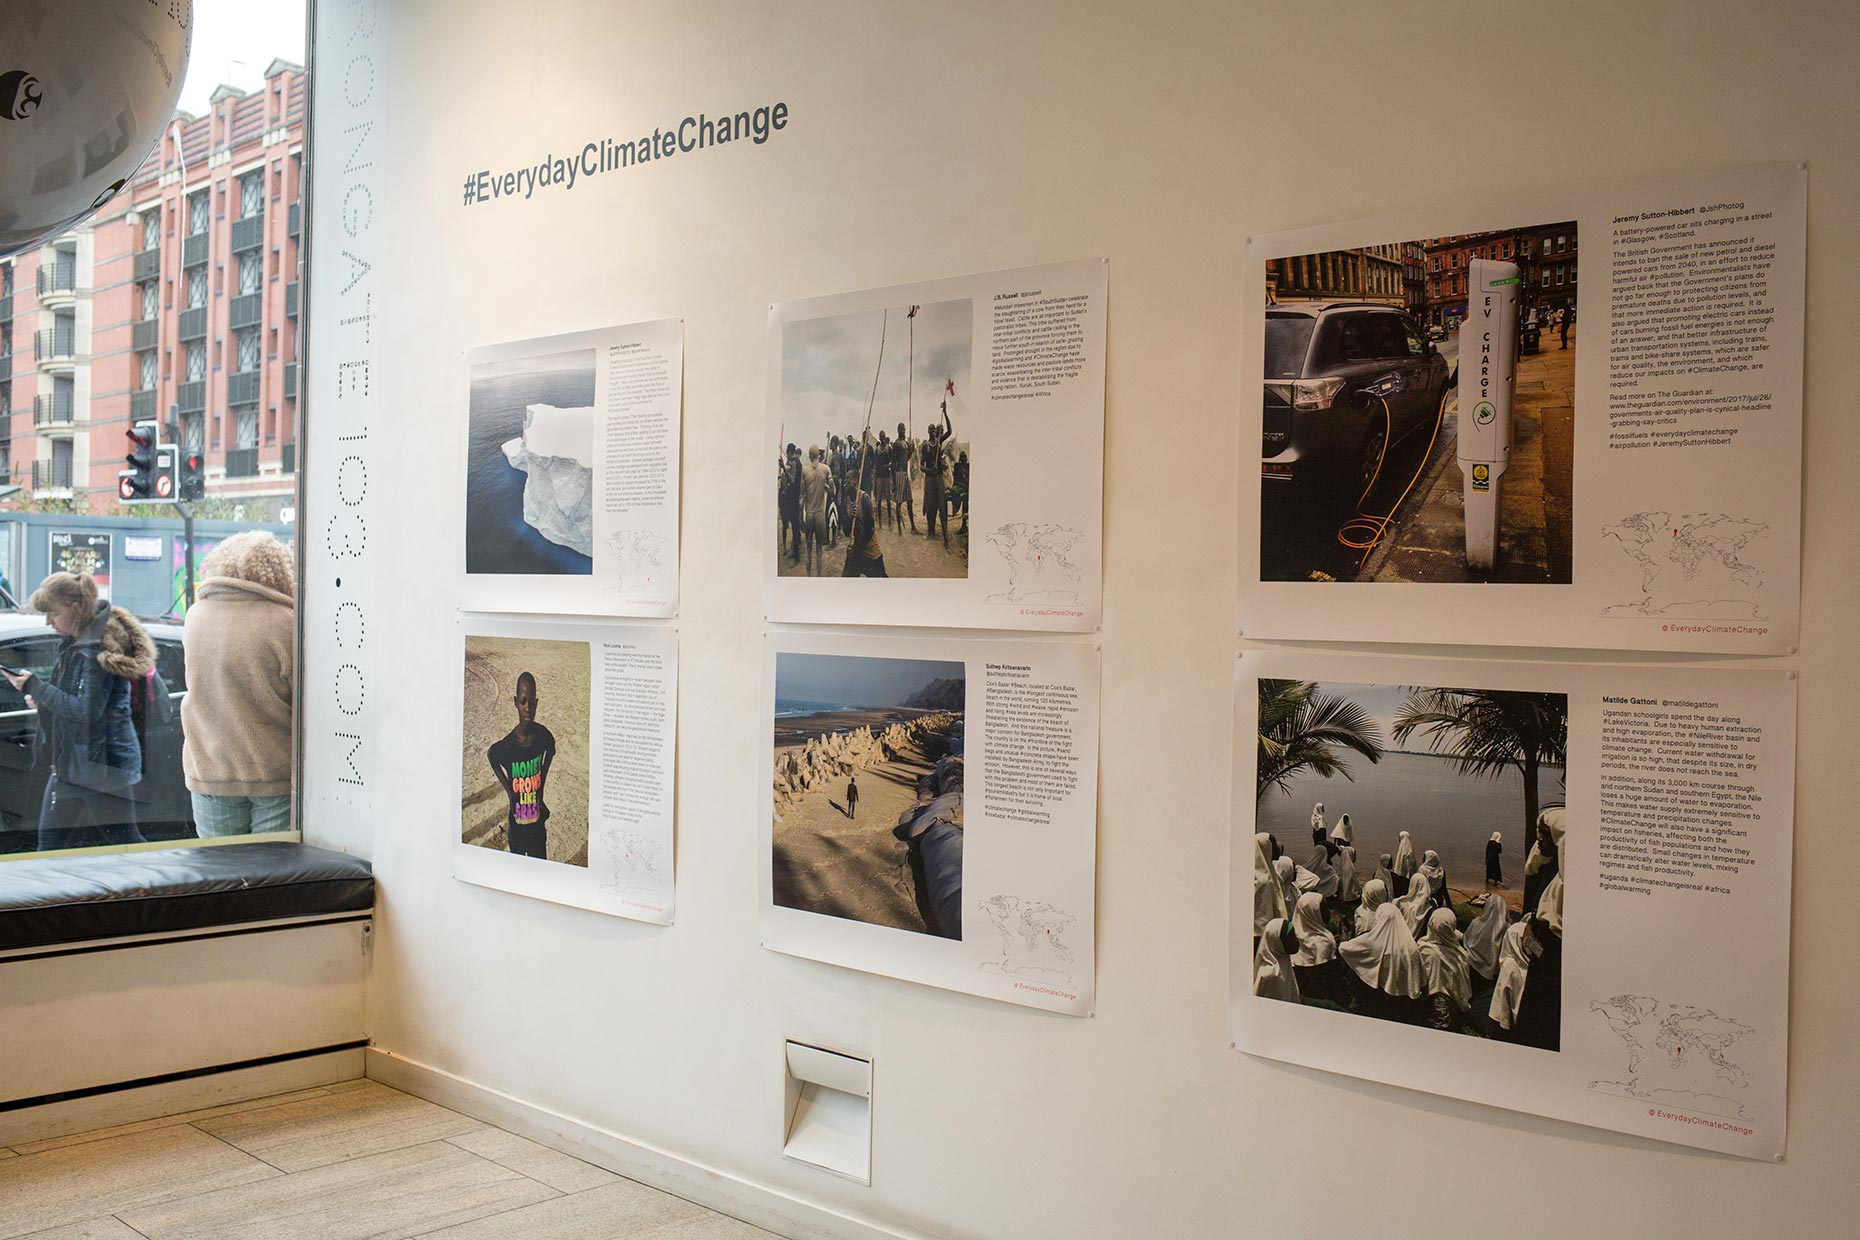 Everyday Climate Change photography exhibition, at Trongate 103, Glasgow, Scotland